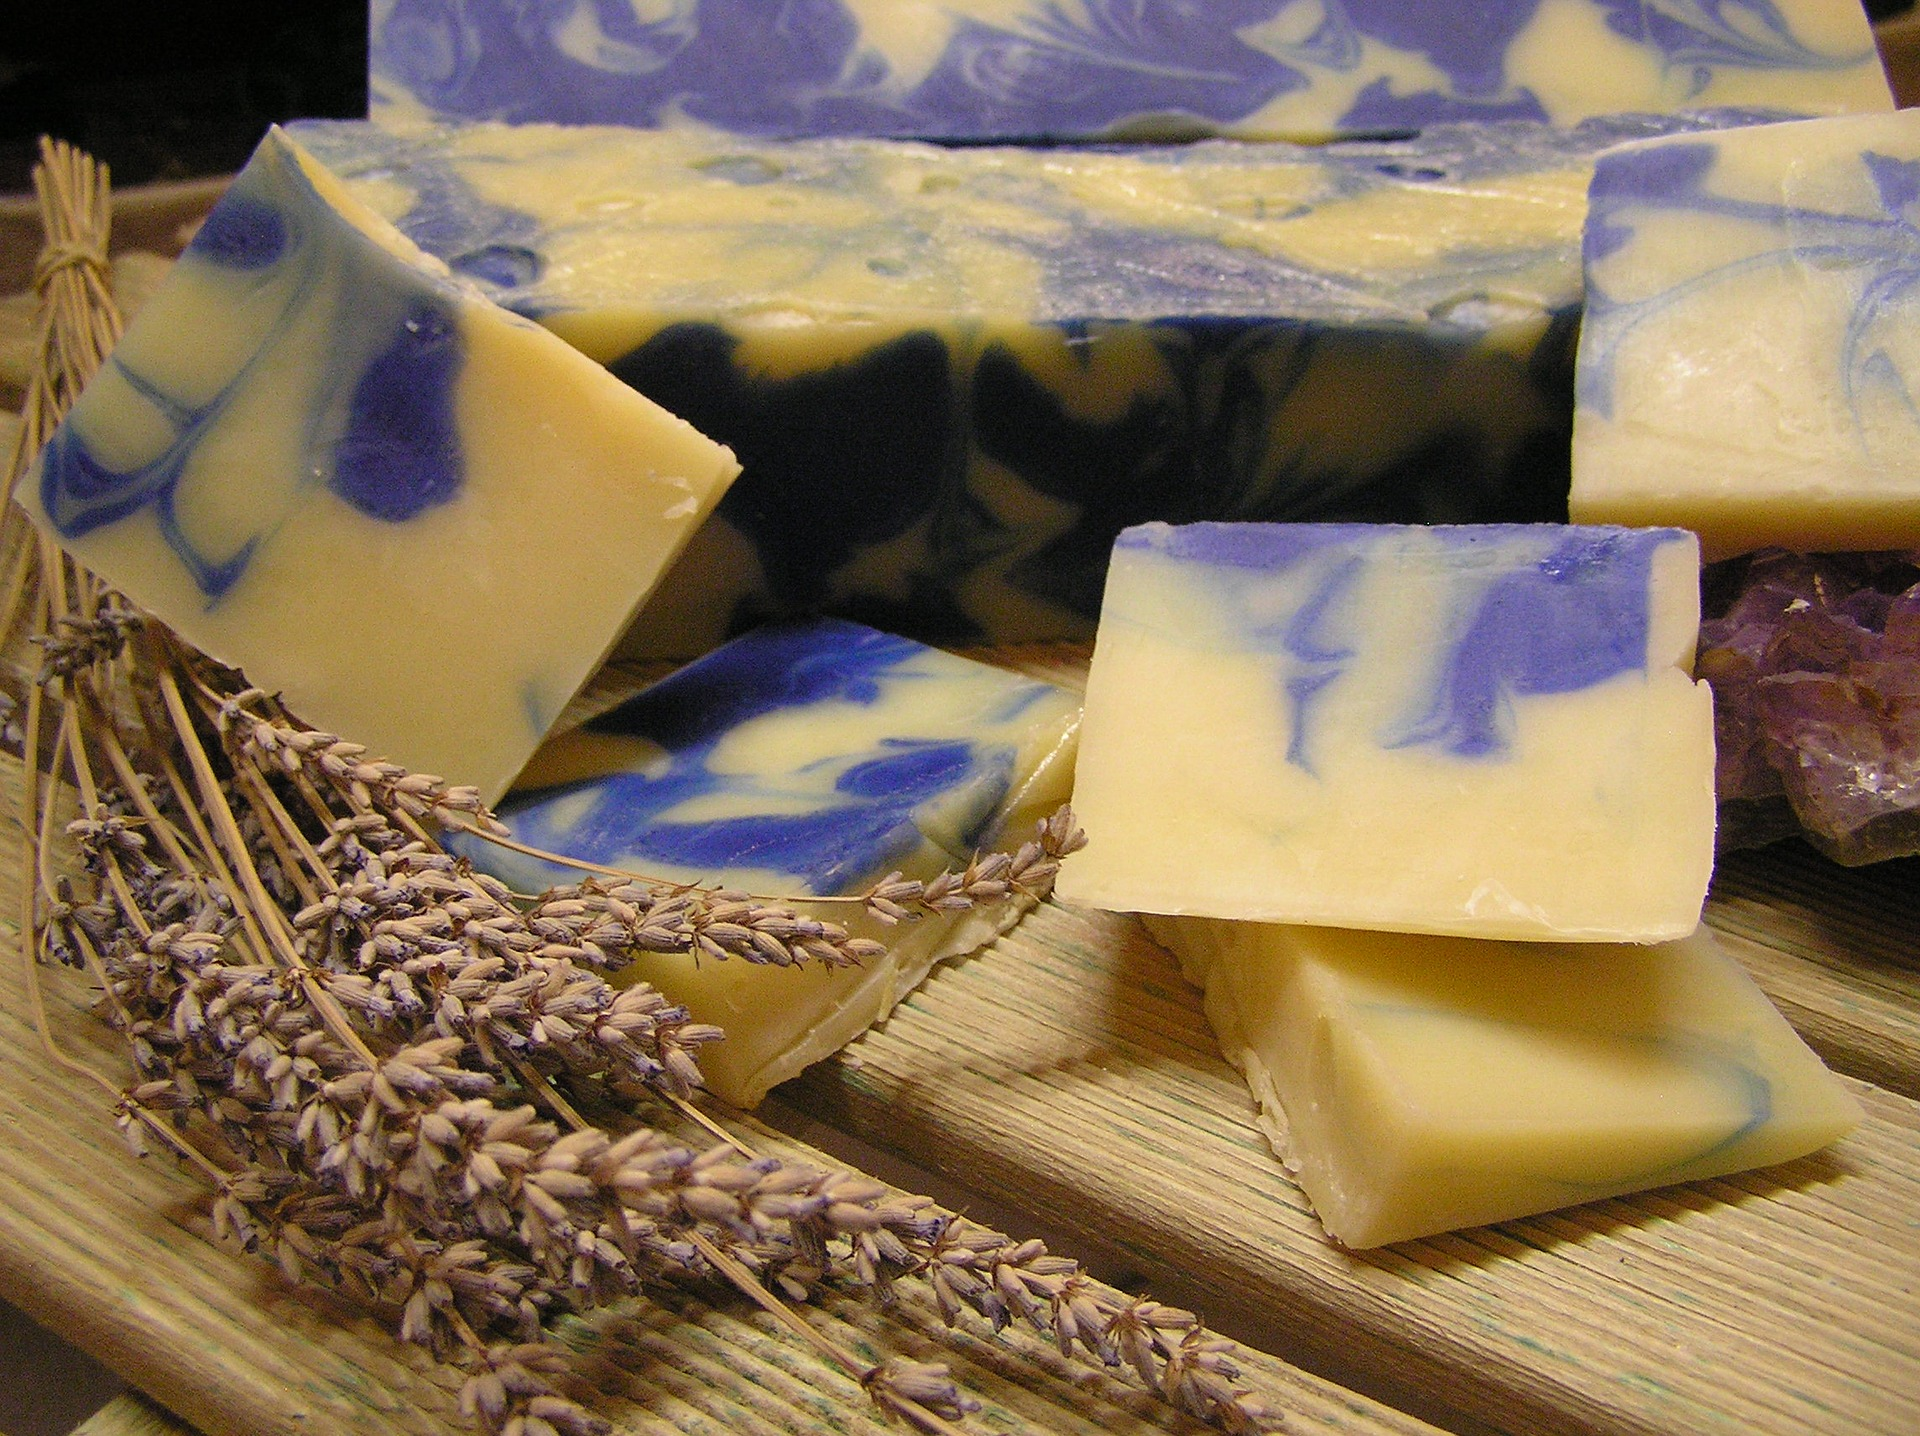 7 Common Soap Making Mistakes (And How to Fix Them)